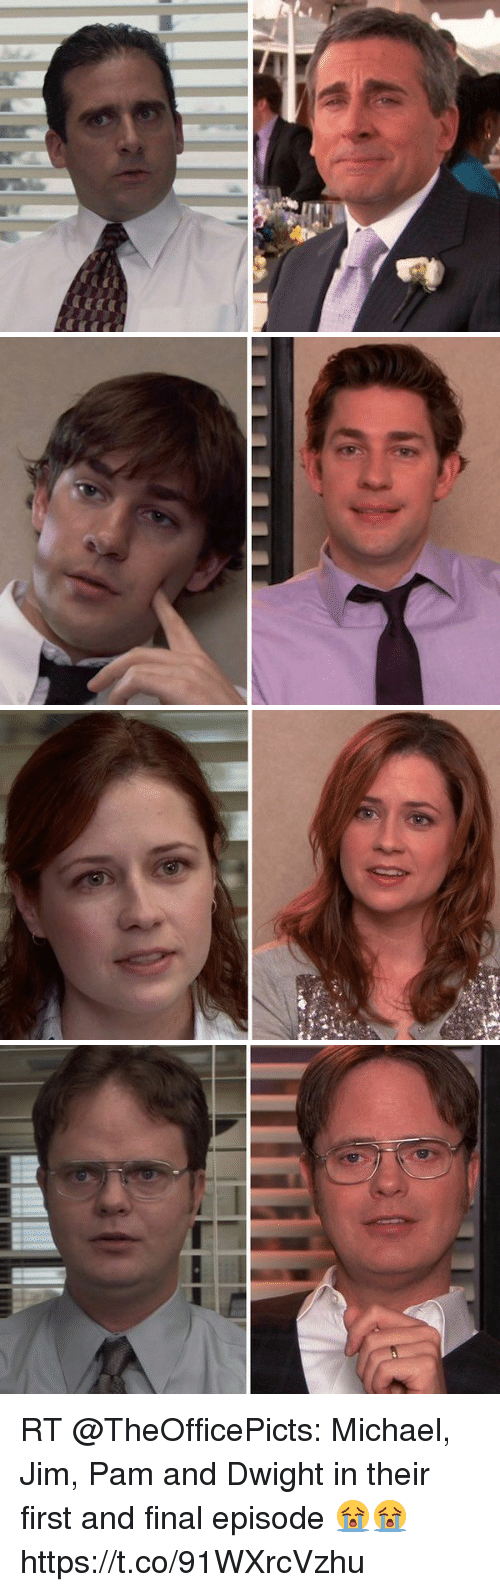 RT Michael Jim Pam and Dwight in Their First and Final